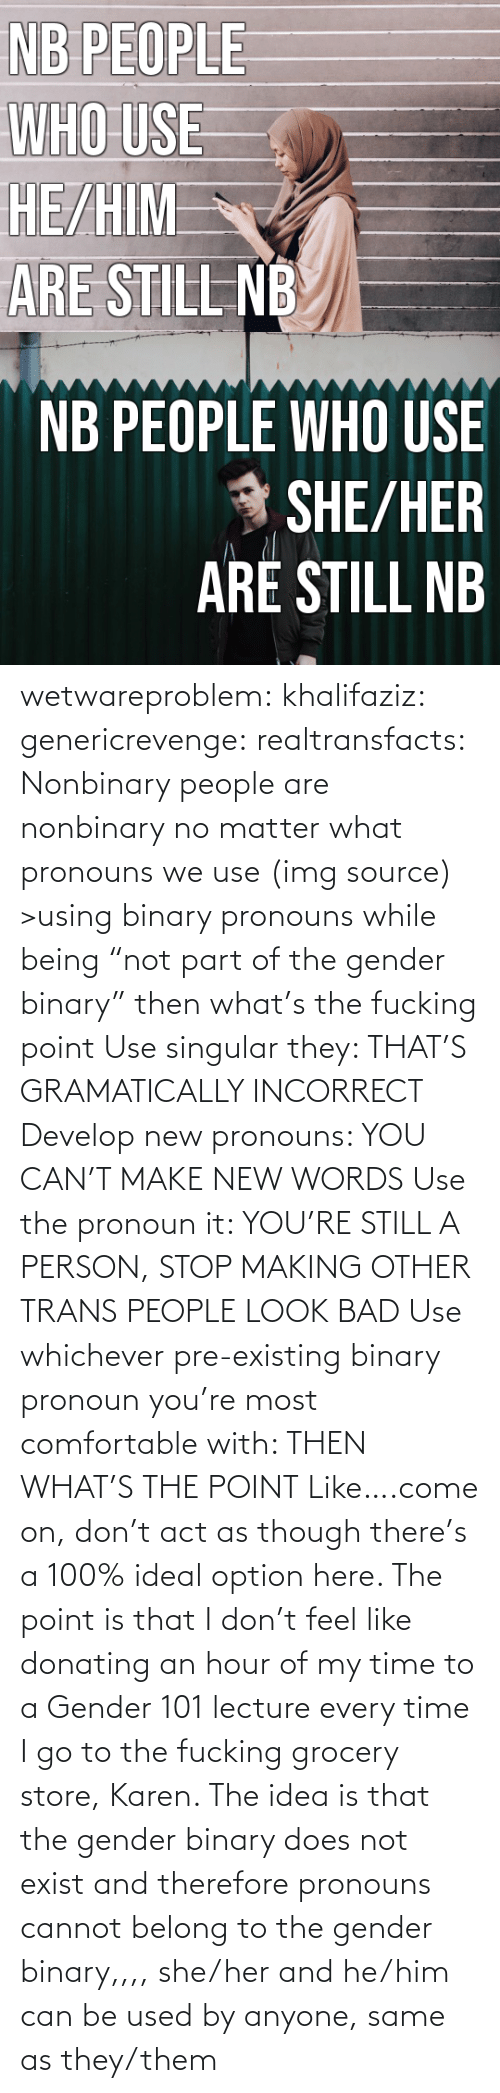 "Gt: NB PEOPLE  WHO USE  HE/HIM  ARE STILL NB   NB PEOPLE WHO USE  * SHE/HER  ARÉ STILL NB wetwareproblem: khalifaziz:   genericrevenge:   realtransfacts: Nonbinary people are nonbinary no matter what pronouns we use (img source)   >using binary pronouns while being ""not part of the gender binary"" then what's the fucking point   Use singular they: THAT'S GRAMATICALLY INCORRECT Develop new pronouns: YOU CAN'T MAKE NEW WORDS Use the pronoun it: YOU'RE STILL A PERSON, STOP MAKING OTHER TRANS PEOPLE LOOK BAD Use whichever pre-existing binary pronoun you're most comfortable with: THEN WHAT'S THE POINT Like….come on, don't act as though there's a 100% ideal option here.    The point is that I don't feel like donating an hour of my time to a Gender 101 lecture every time I go to the fucking grocery store, Karen.     The idea is that the gender binary does not exist and therefore pronouns cannot belong to the gender binary,,,, she/her and he/him can be used by anyone, same as they/them"